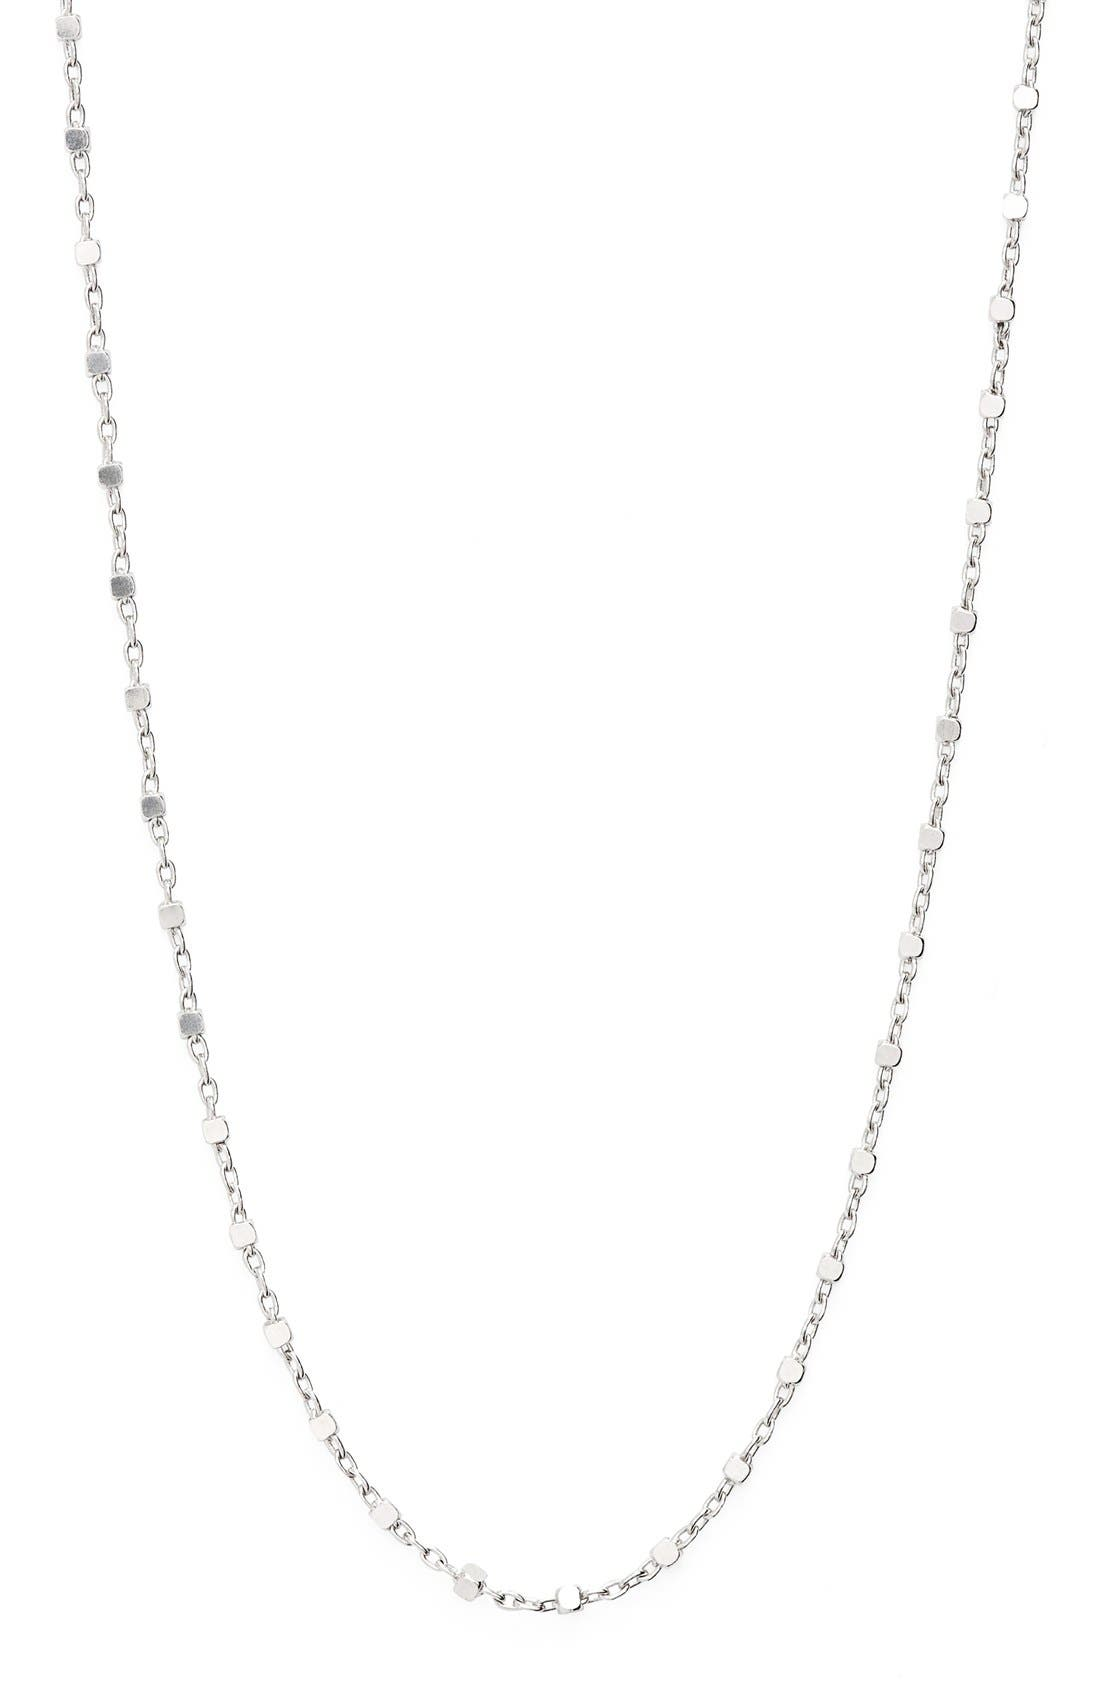 Main Image - Bony Levy Beaded Chain Collar Necklace (Nordstrom Exclusive)